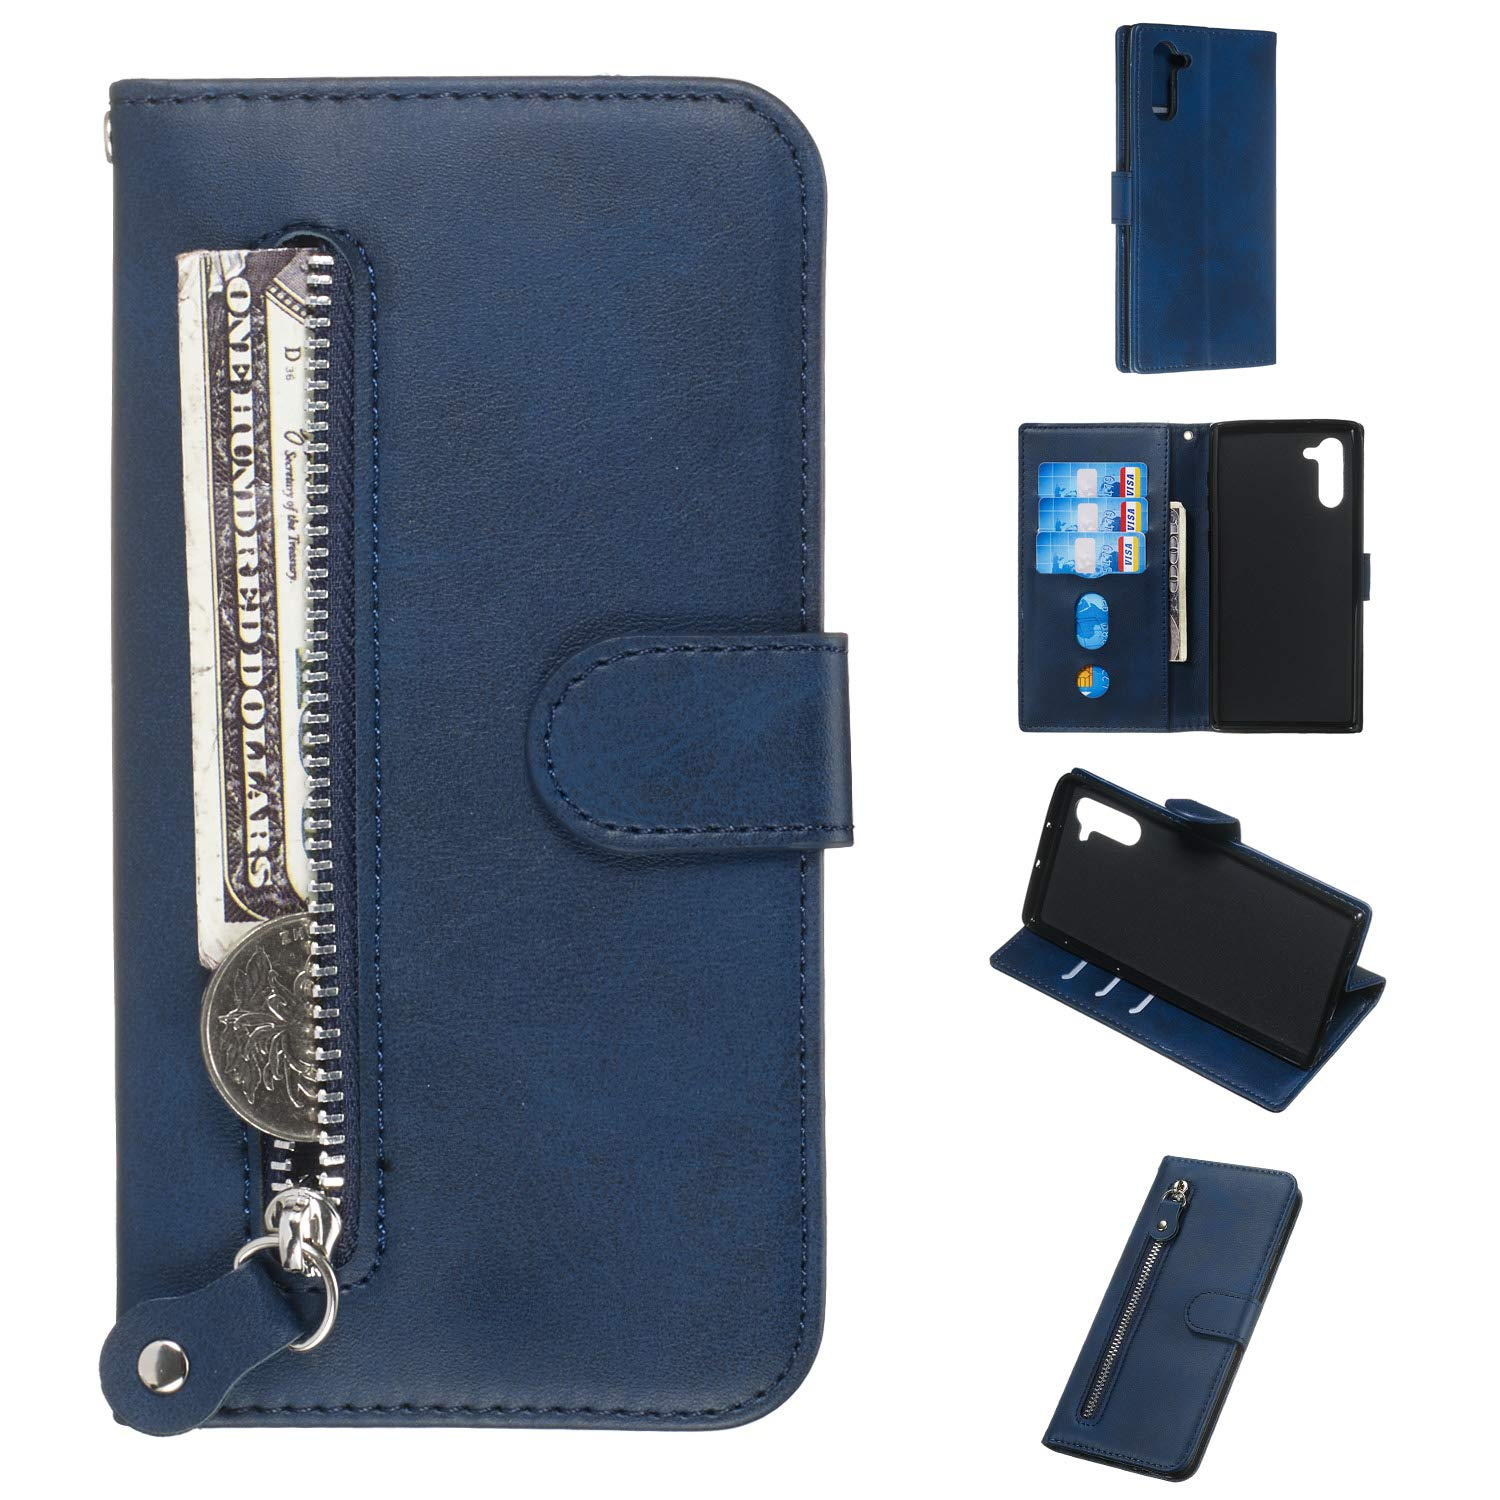 DAMONDY for Galaxy Note10 5G Case,Zipper Stand Wallet Purse Card Slot ID Holders Design Folio Flip Leather Cover Pocket Purse Magnetic Protective for Samsung Galaxy Note 10 Note10 5G 2019-Blue by DAMONDY